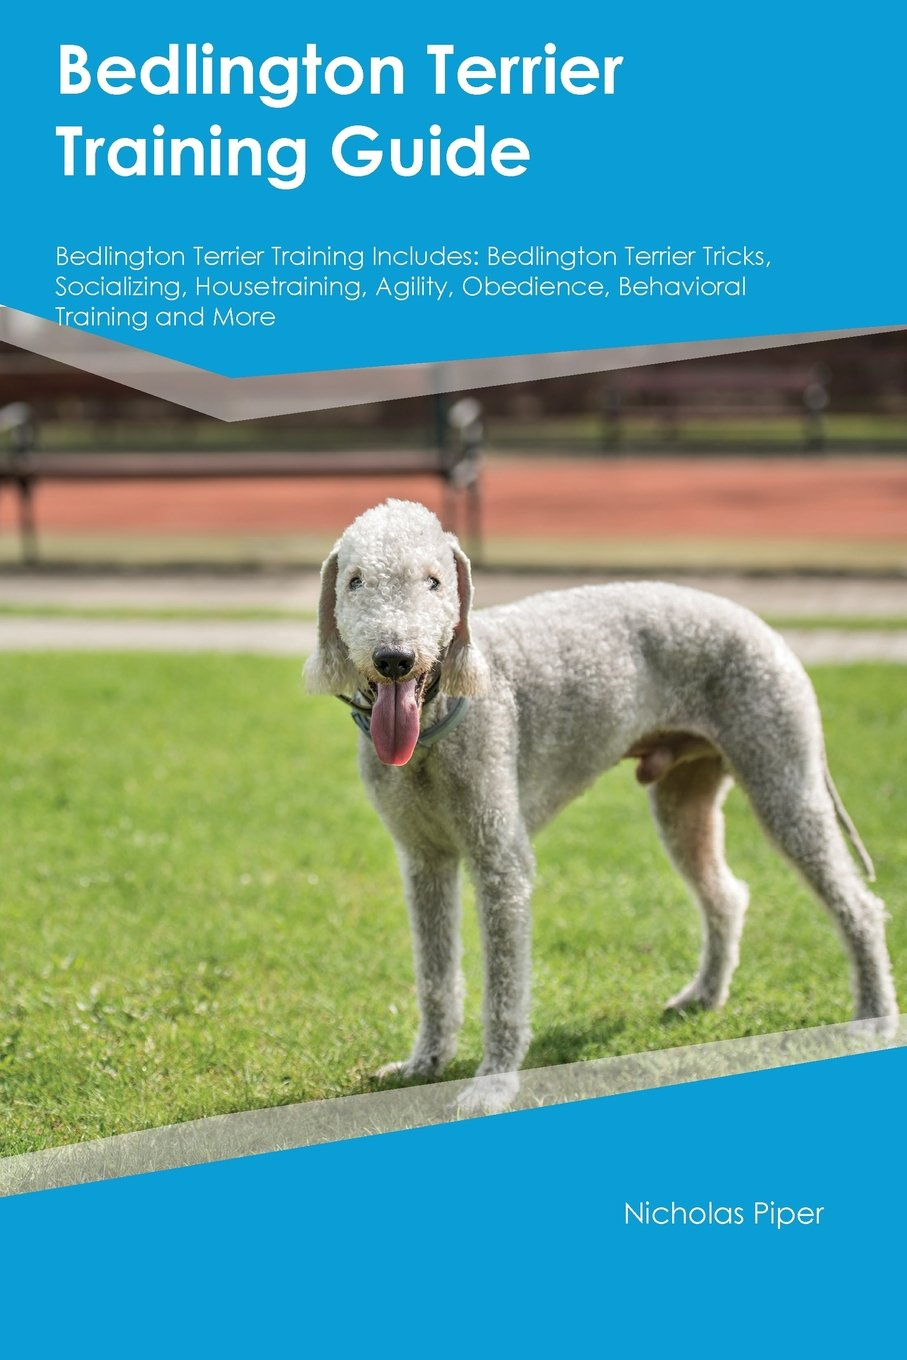 Bedlington Terrier Training Guide Bedlington Terrier Training Includes: Bedlington Terrier Tricks, Socializing, Housetraining, Agility, Obedience, Behavioral Training and More